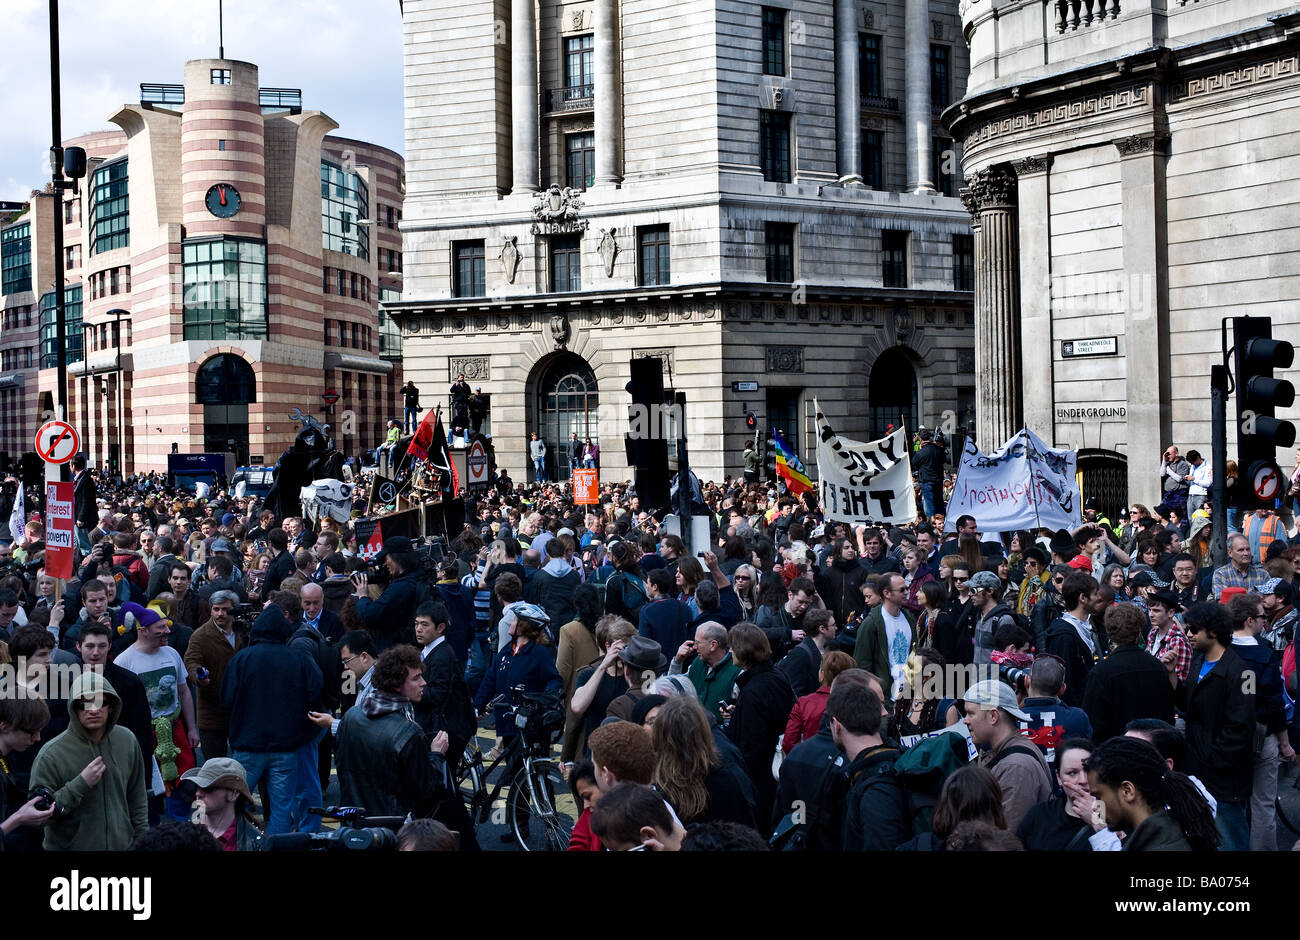 Protesters at the G20 demonstration in the City of London. - Stock Image